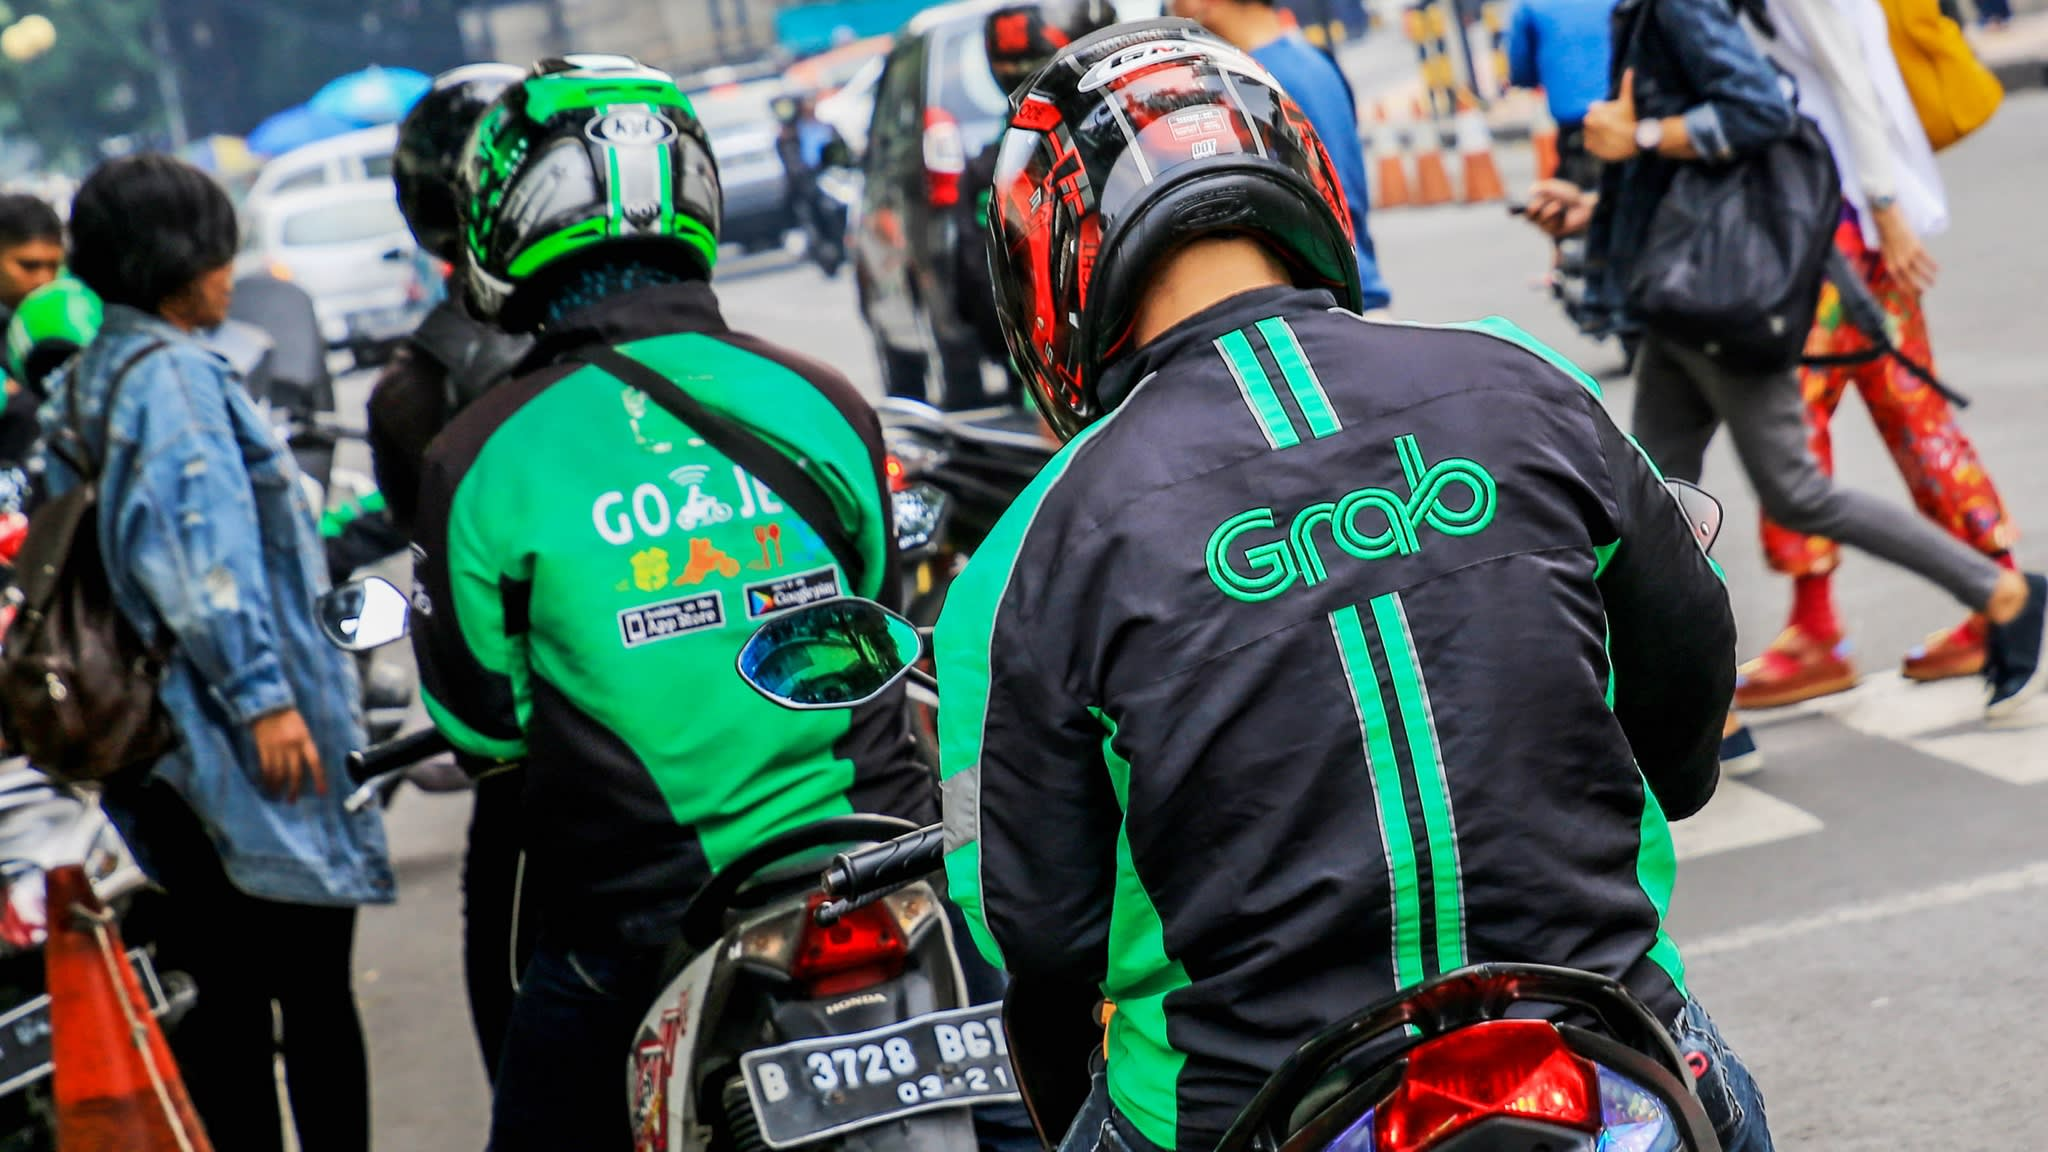 A Go-Jek and Grab driver  waiting for the customers